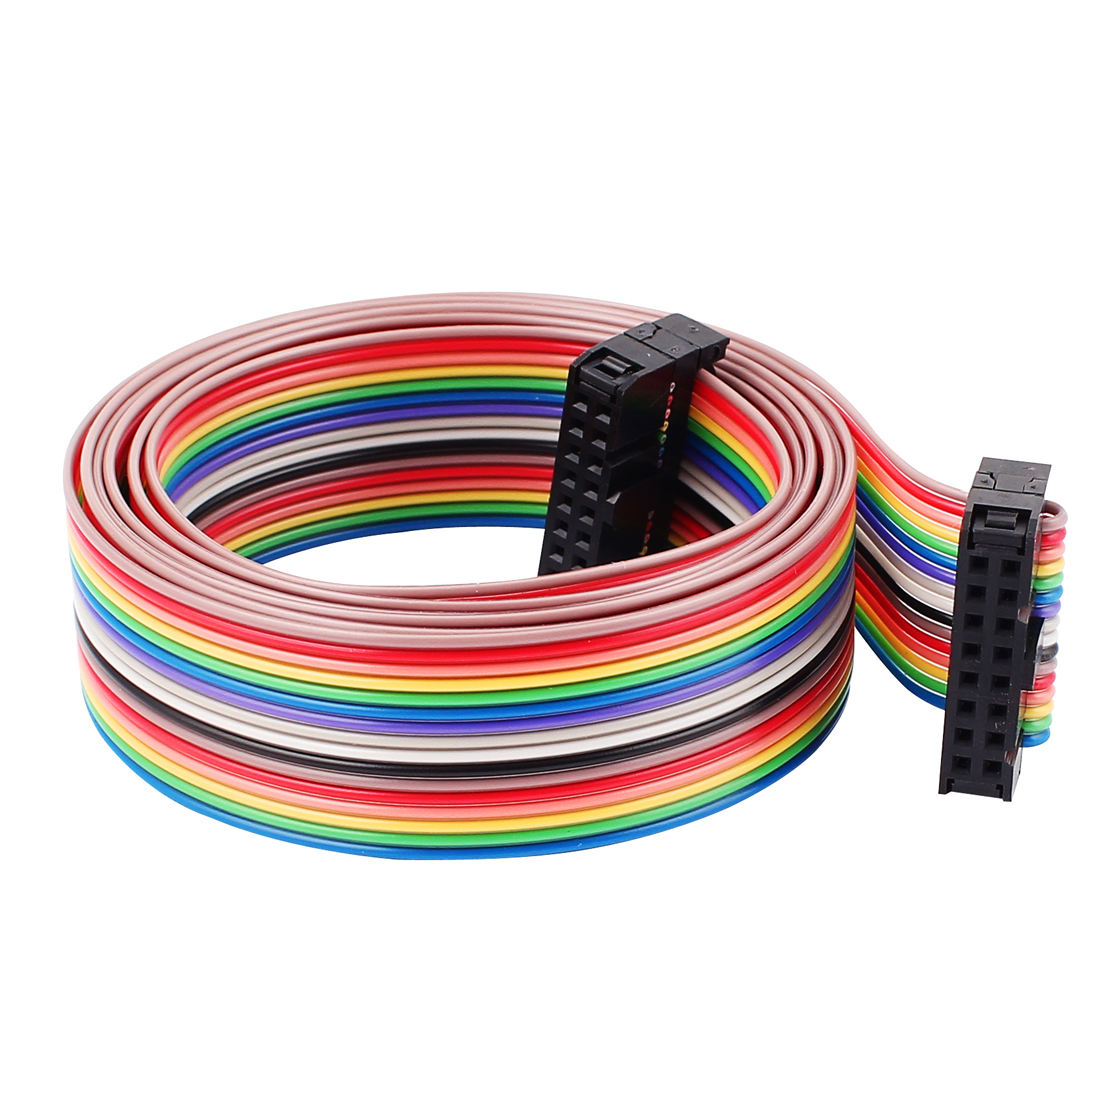 2.54mm Pitch 16Pin 16 Way F/F Connector Rainbow Wire IDC Flat Ribbon Cable 3.8ft